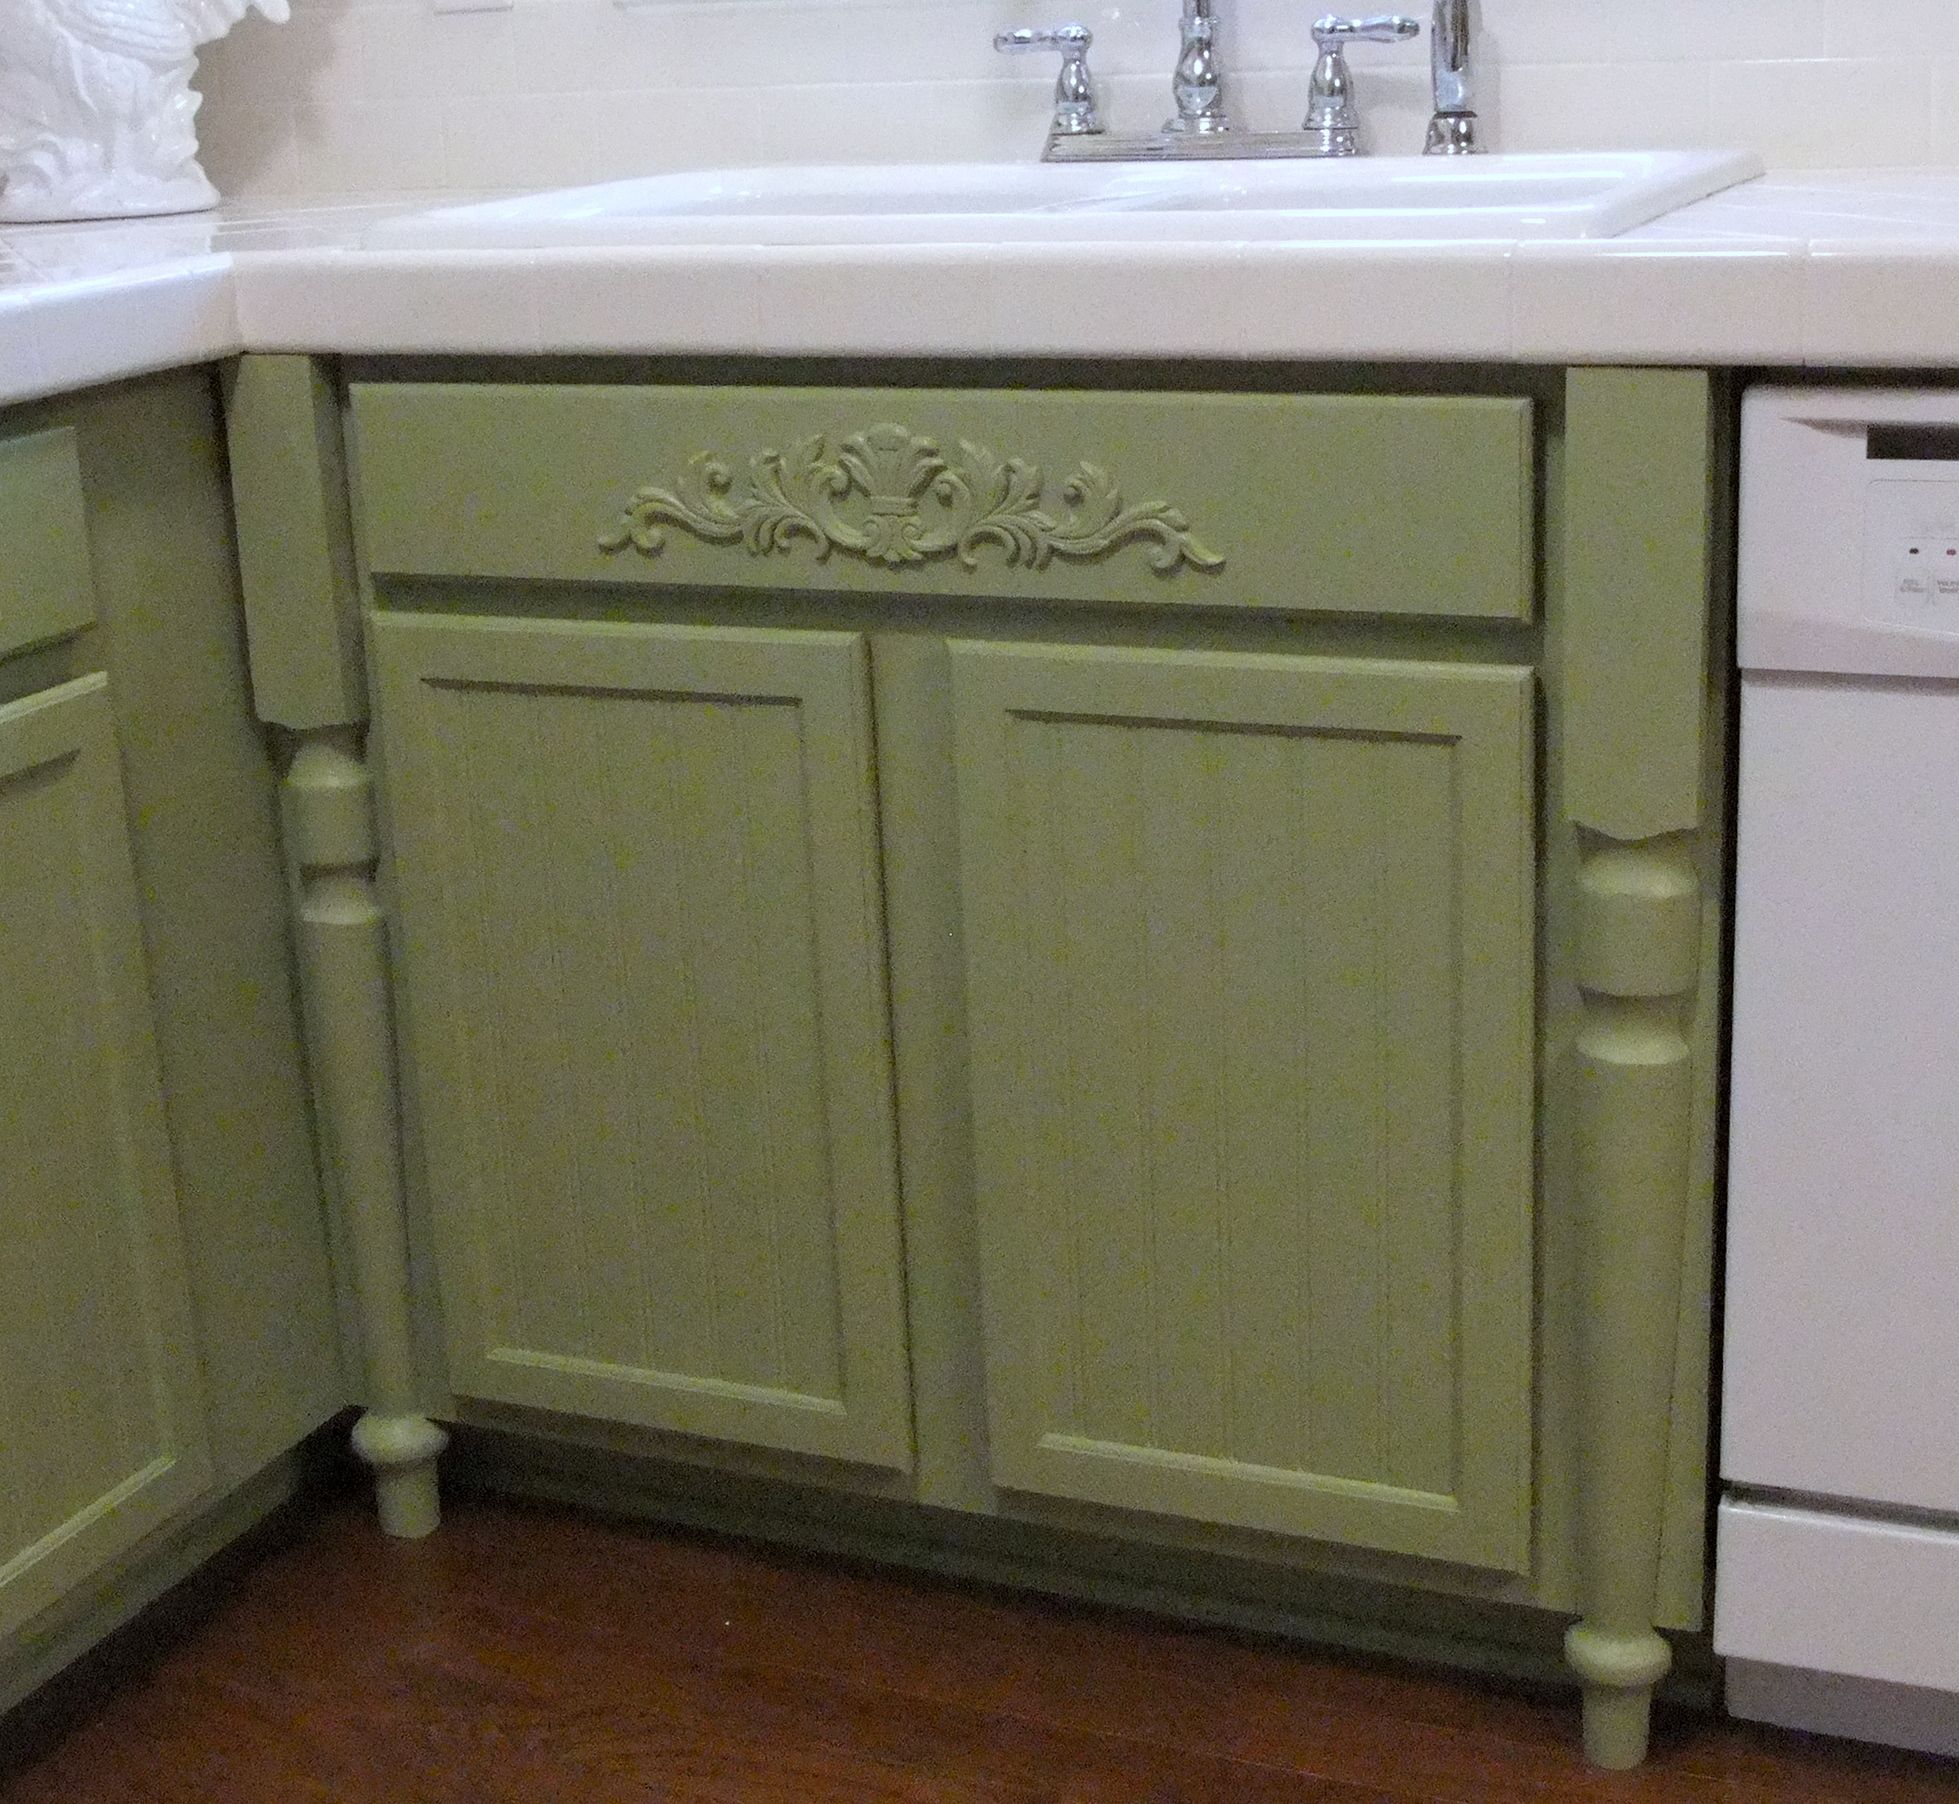 Kitchen Cabinets With Legs Rustic Island Lighting Love The On This Sink Cabinet Maybe Should